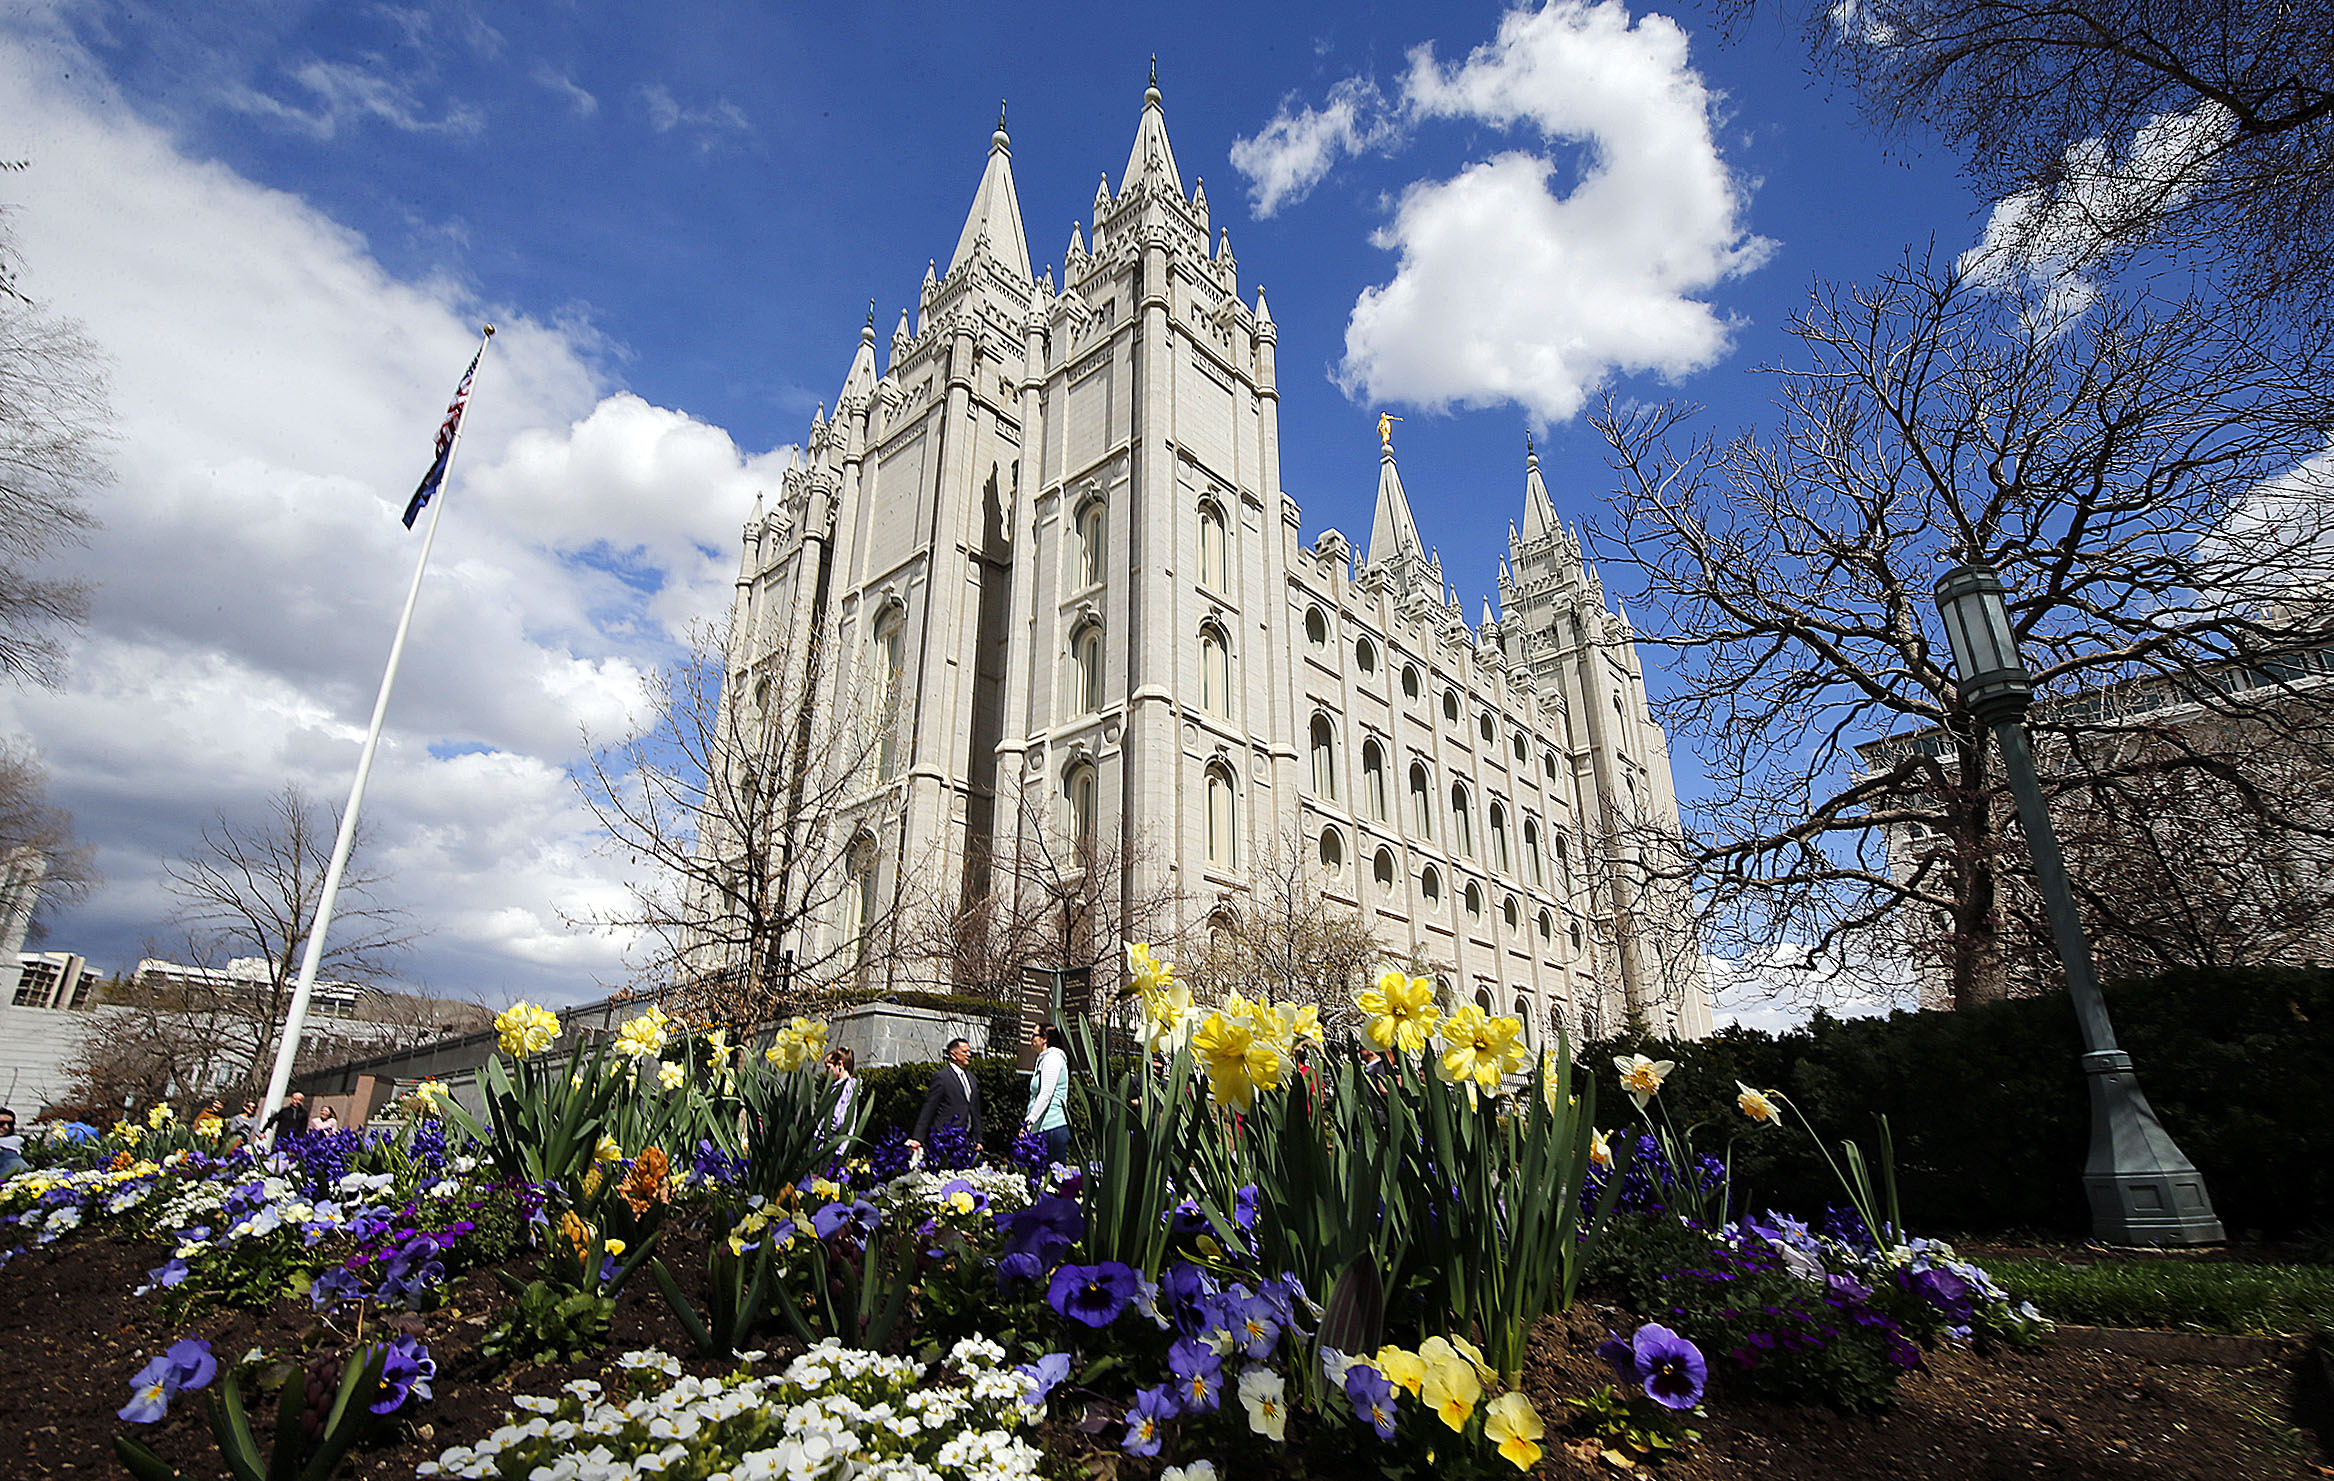 Flowers bloom near the Salt Lake Temple of The Church of Jesus Christ of Latter-day Saints in Salt Lake City on Friday, April 5, 2019. Leaders of The Church of Jesus Christ of Latter-day Saints discontinued a policy Monday morning, May 6, requiring couples who marry civilly to wait one year before being sealed in the temple.